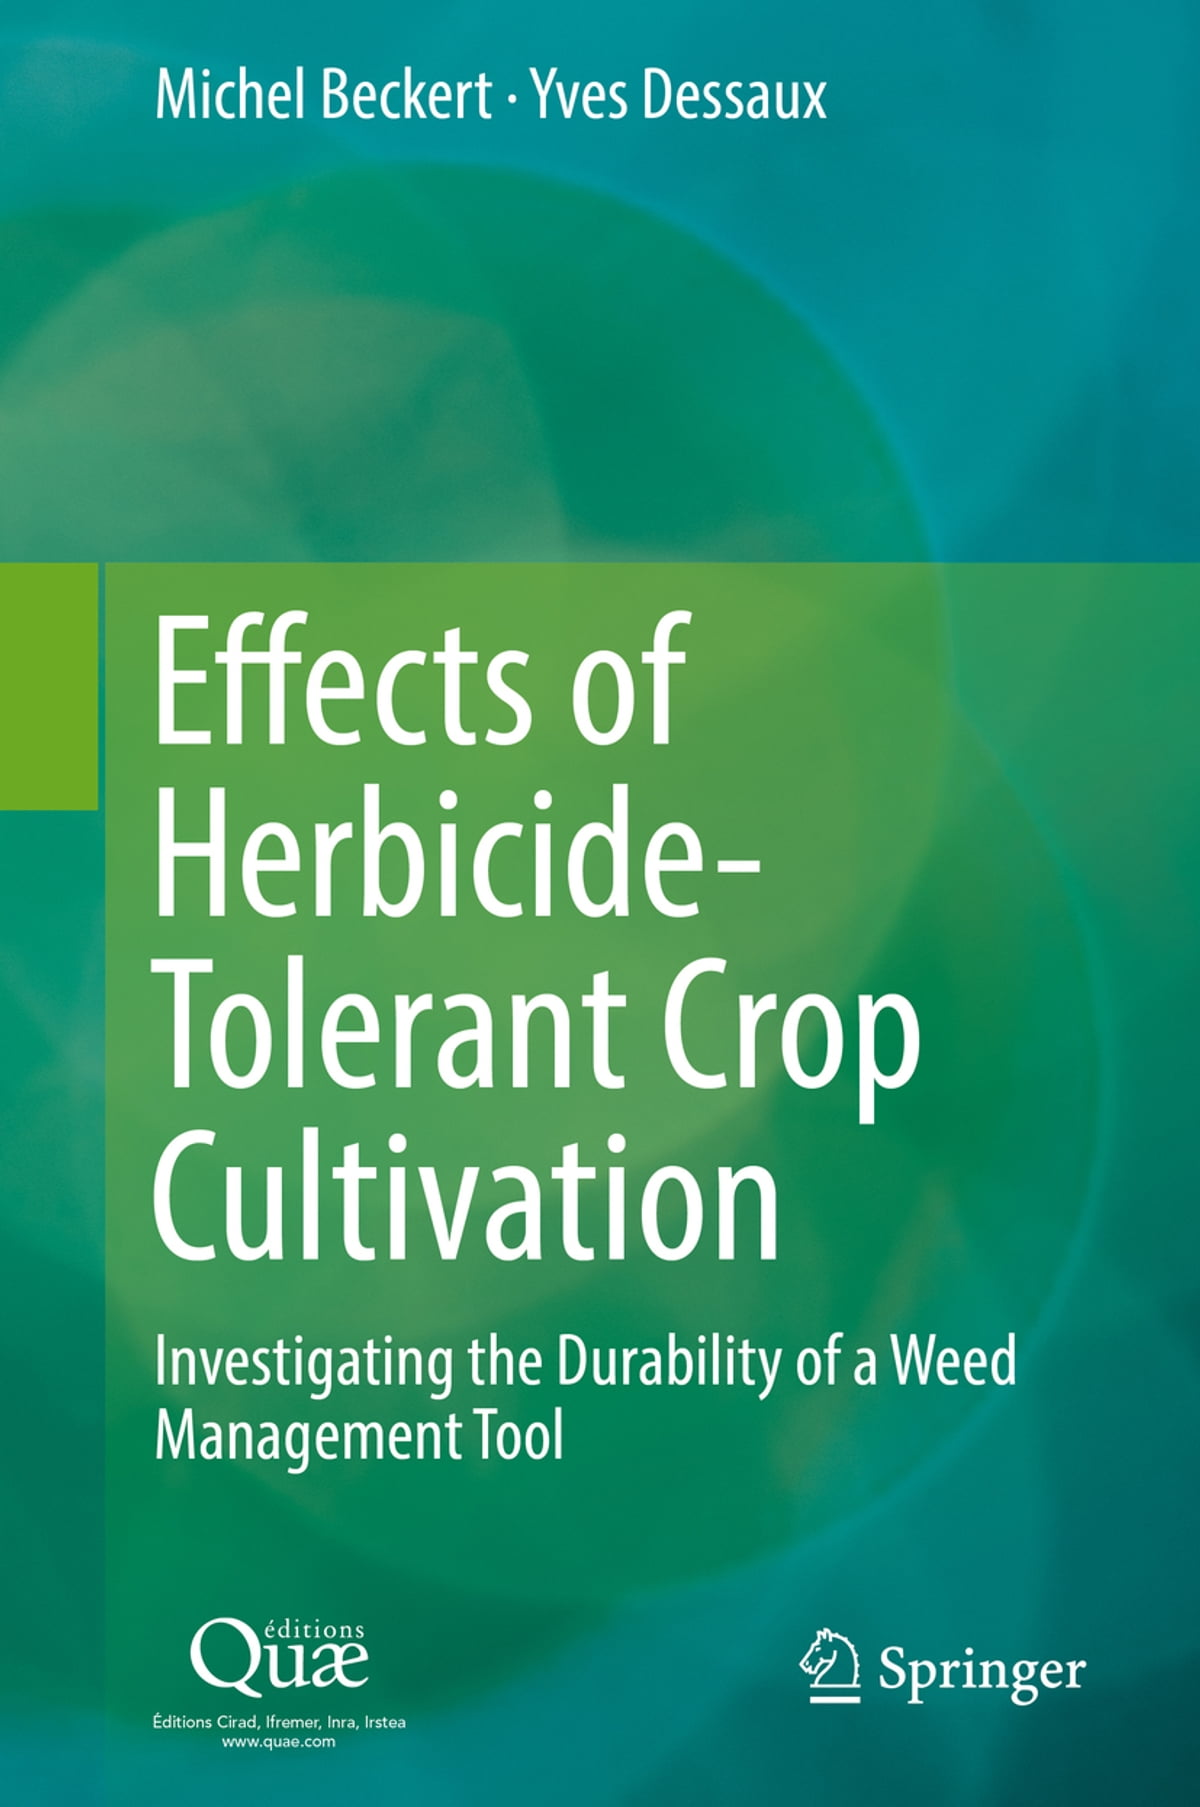 cultivation effect Culture definition is - the customary beliefs, social forms, and material traits of a racial, religious, or social group also : the characteristic features of.